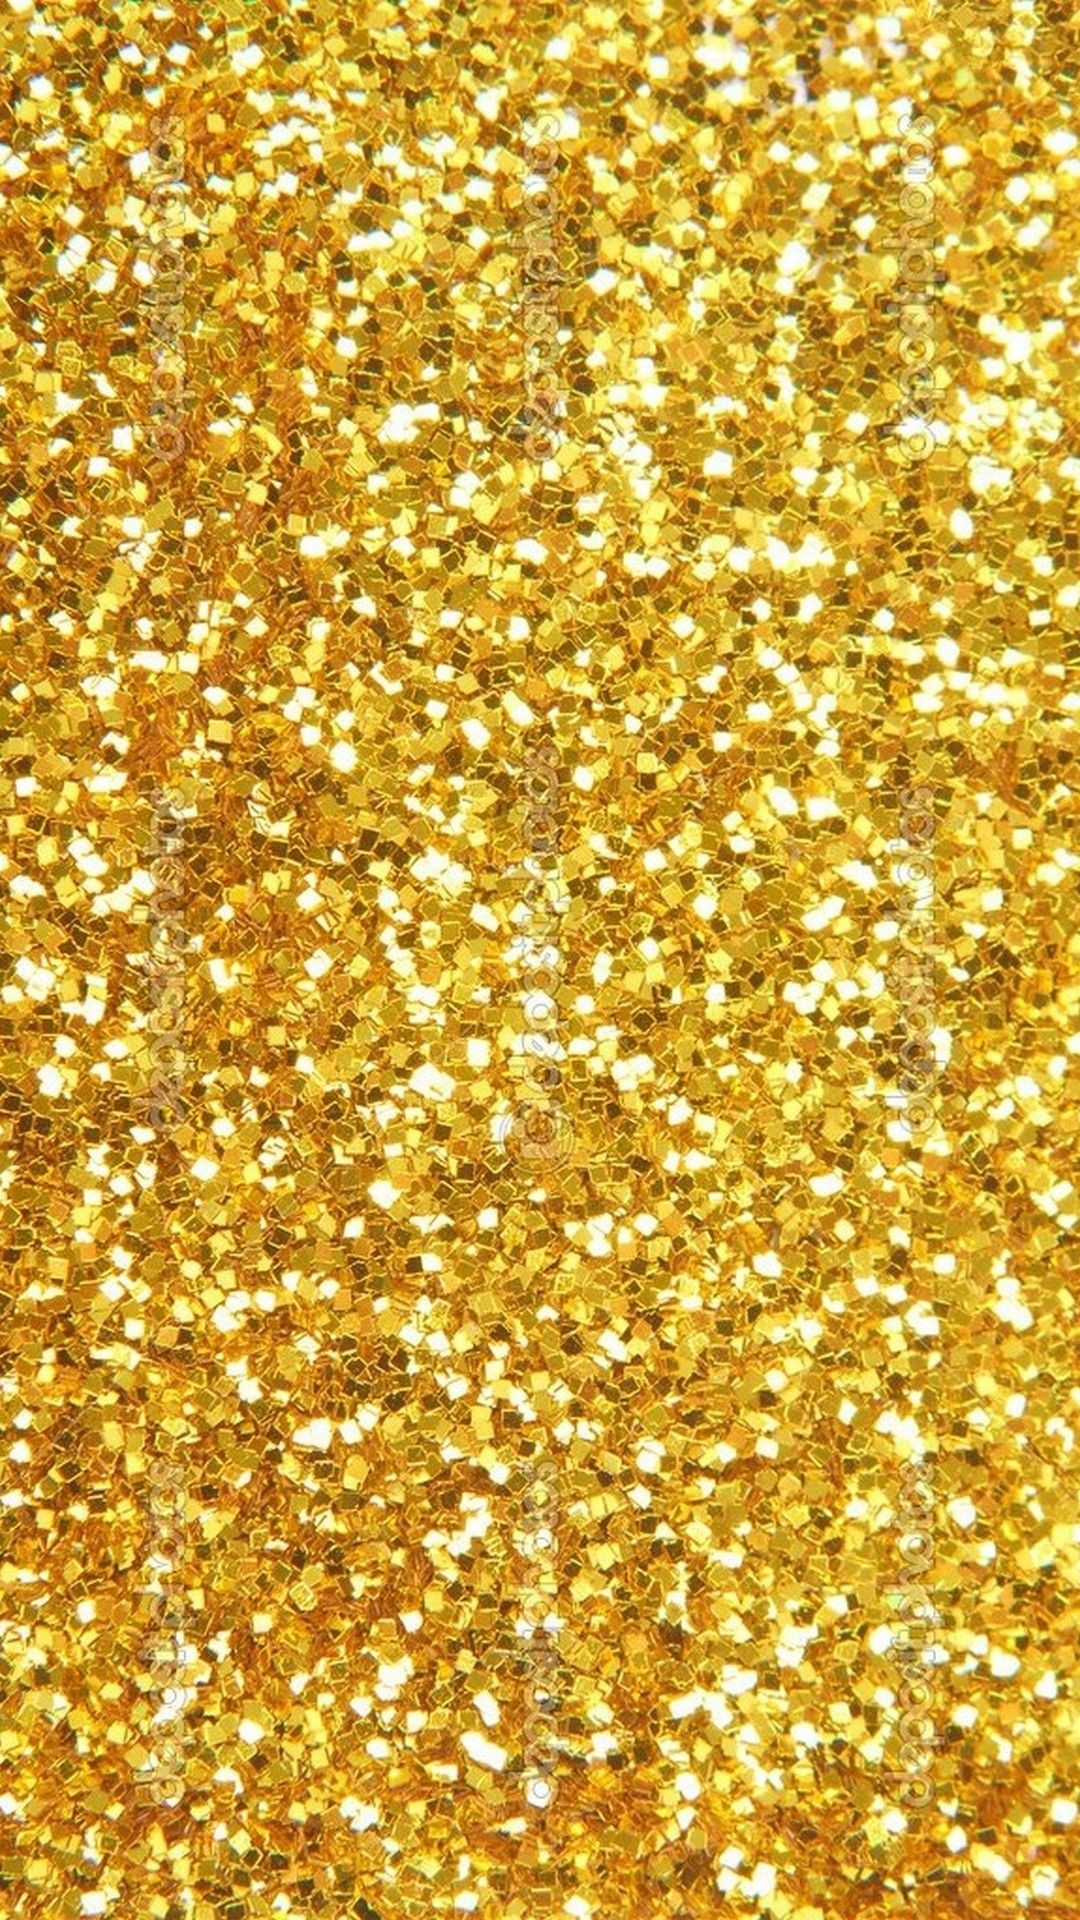 Res: 1080x1920, iPhone 7 Wallpaper Gold Glitter - 2018 iPhone Wallpapers